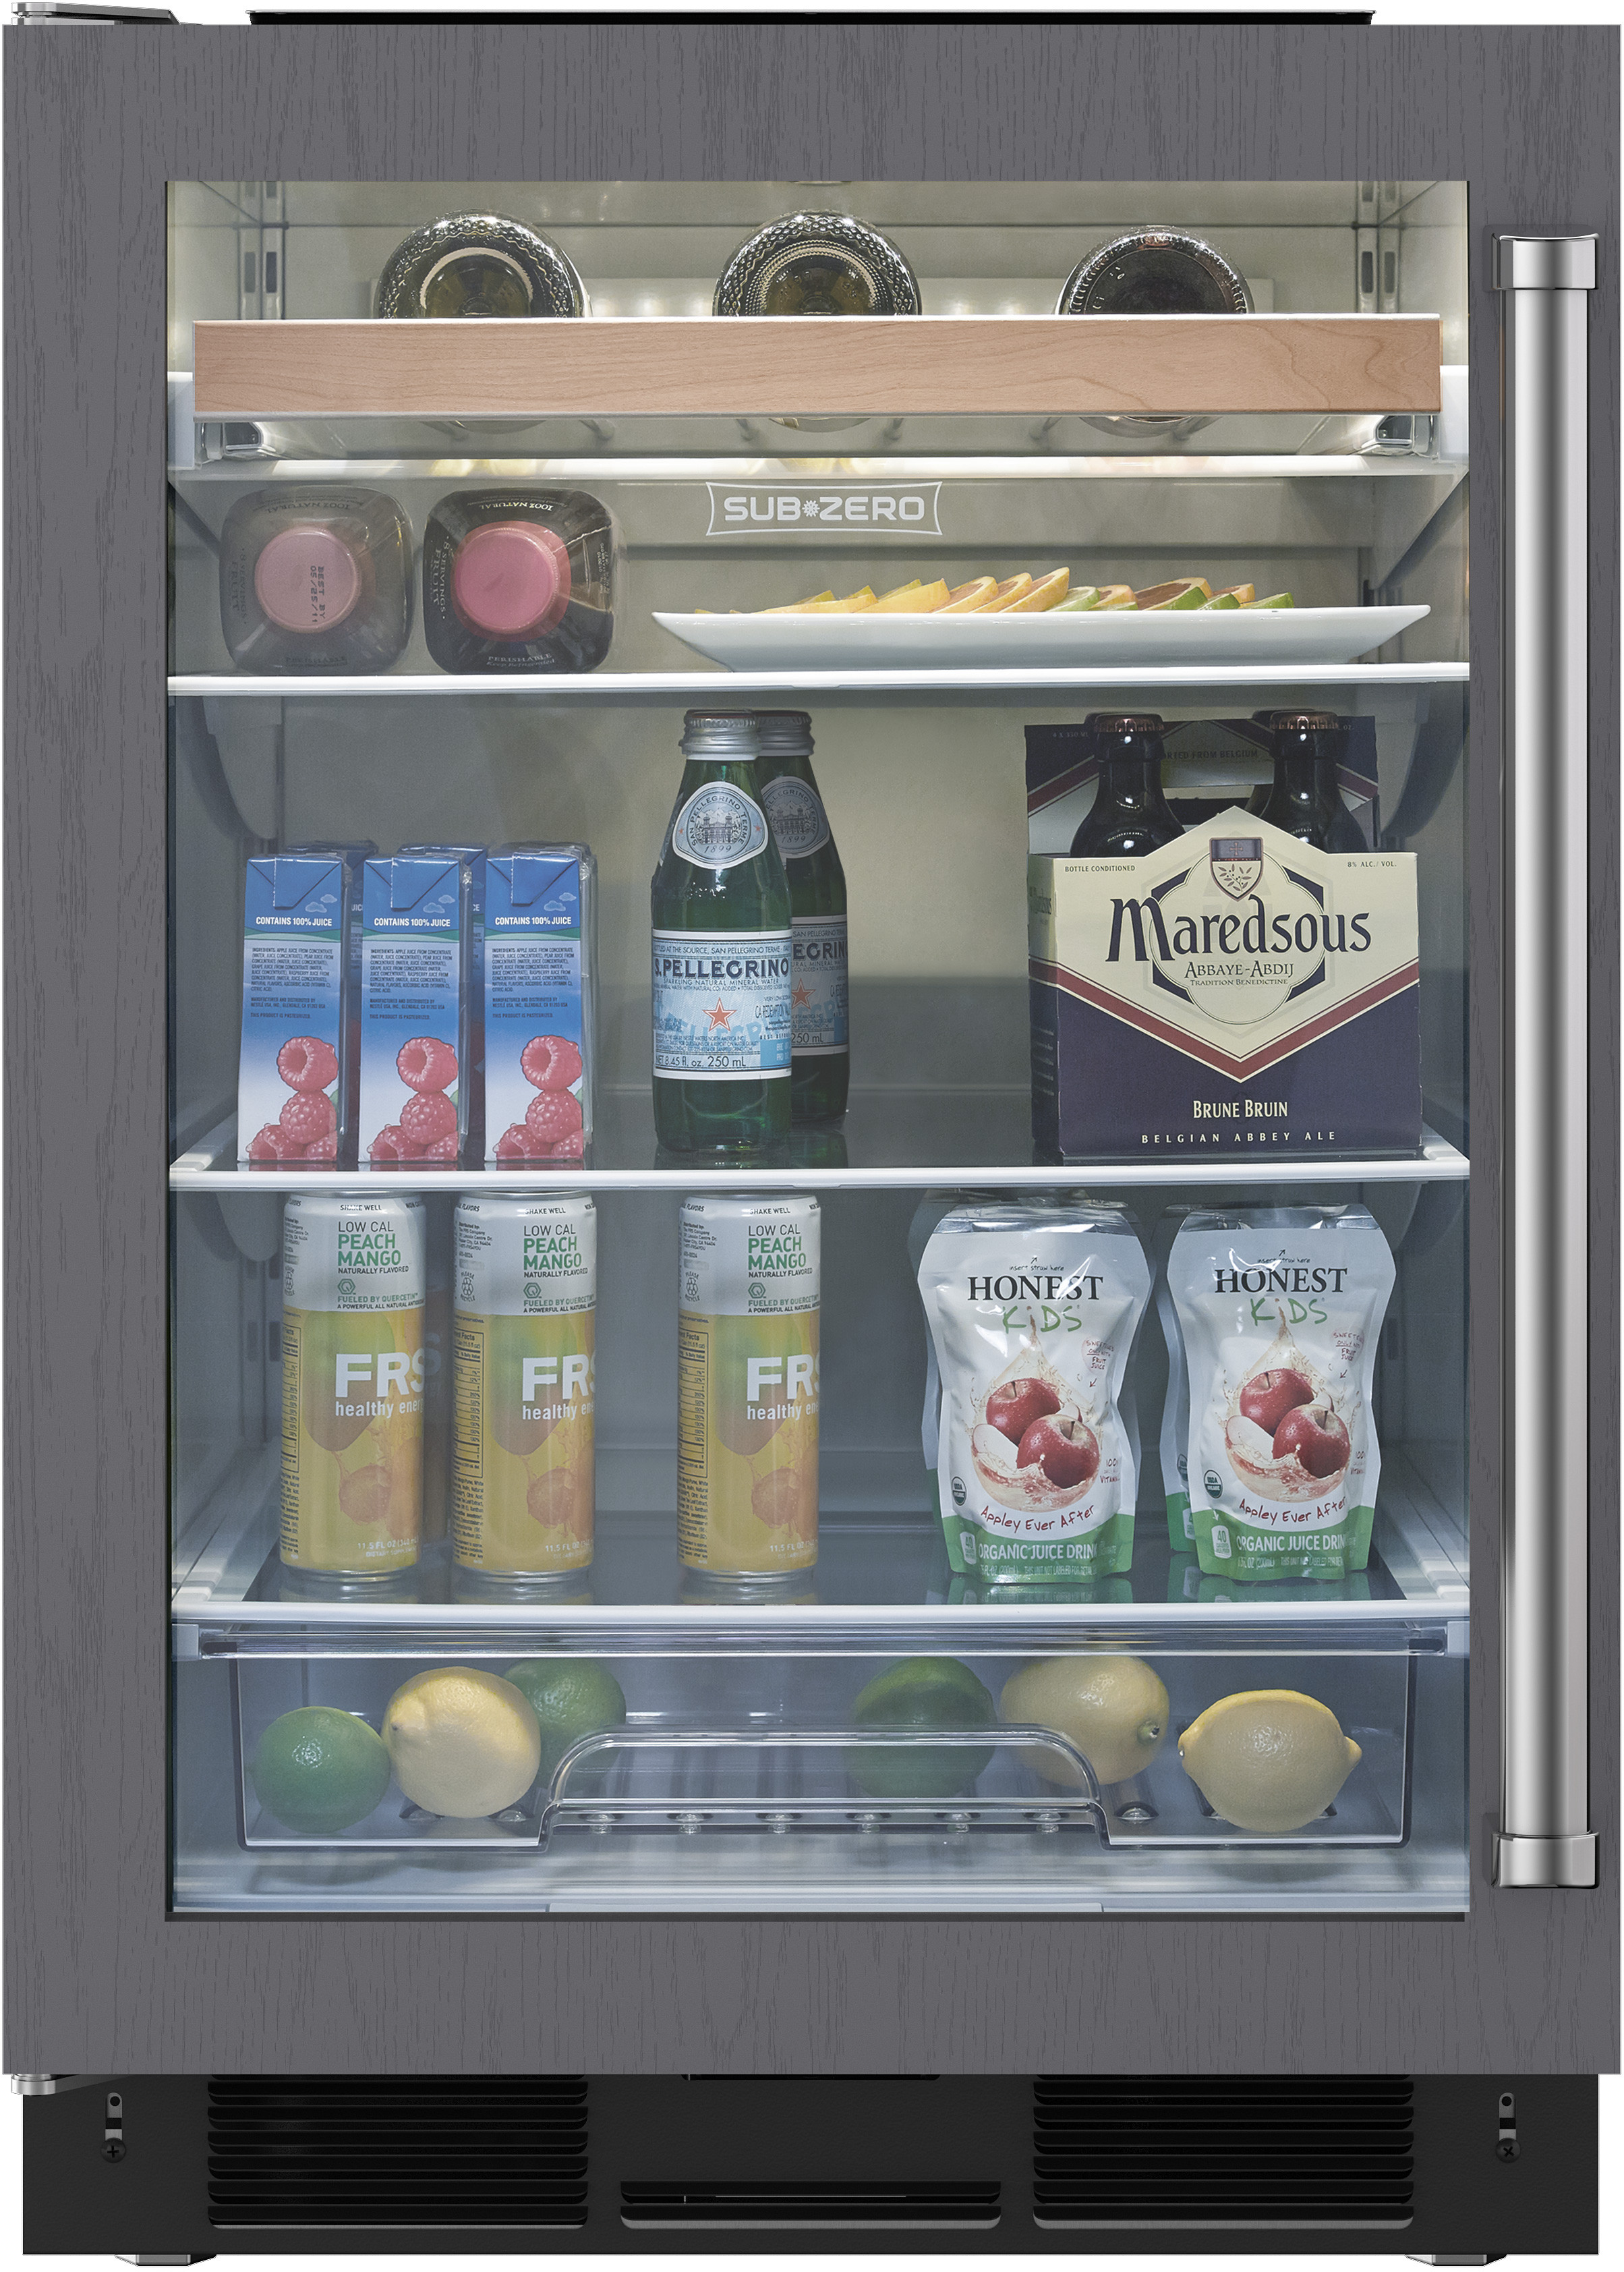 Sub Zero Uc24bgolh 24 Inch Built In Undercounter Beverage Center With 6 0 Cu Ft Capacity 8 Bottle Wine Storage Adjustable Spill Proof Glass Shelf Lcd Display Glass Door And Star K Certified Panel Ready Left Hinge Door